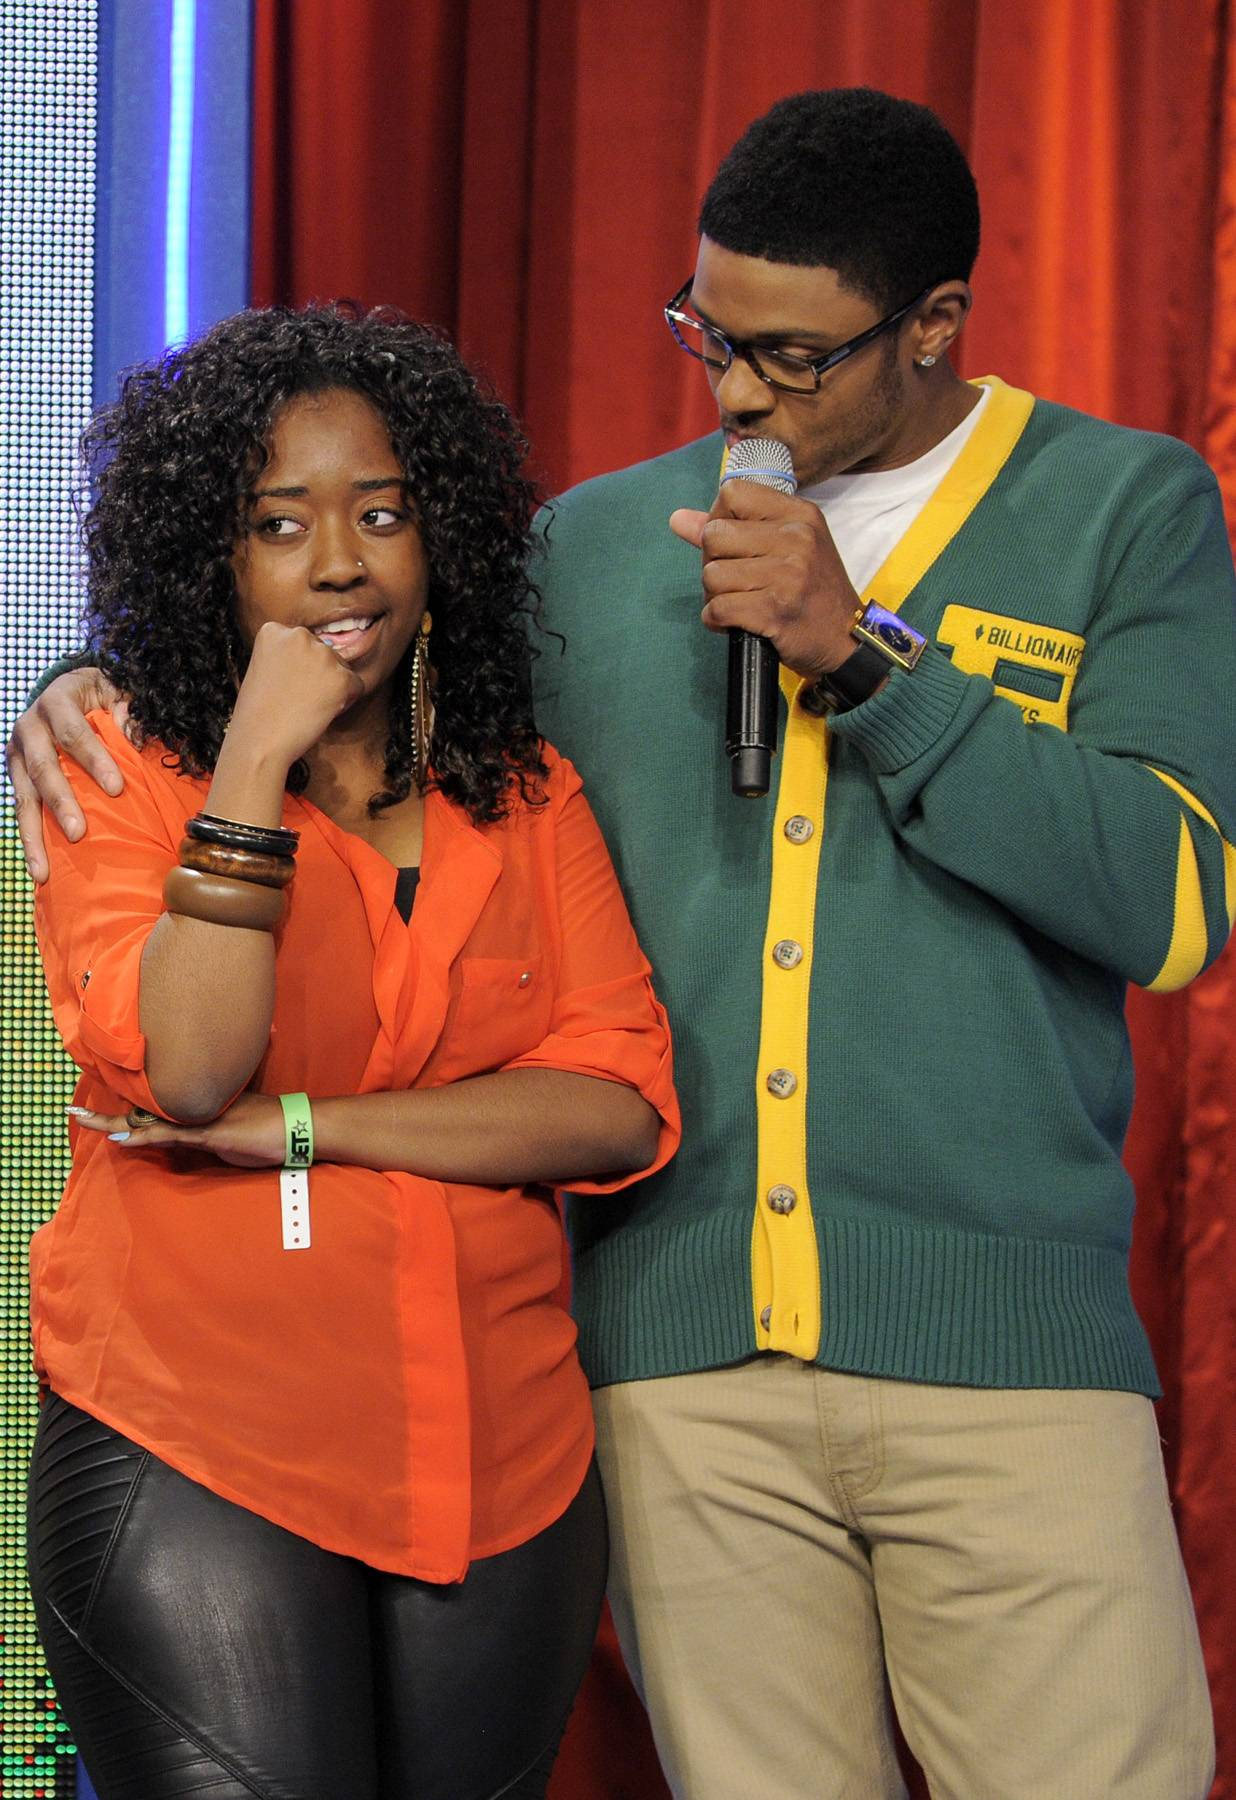 Pooch Talks to an Audience Member - Rocsi Diaz and Pooch Hall does random facts with audience members at 106 & Park, April 12, 2012. (Photo: John Ricard / BET)